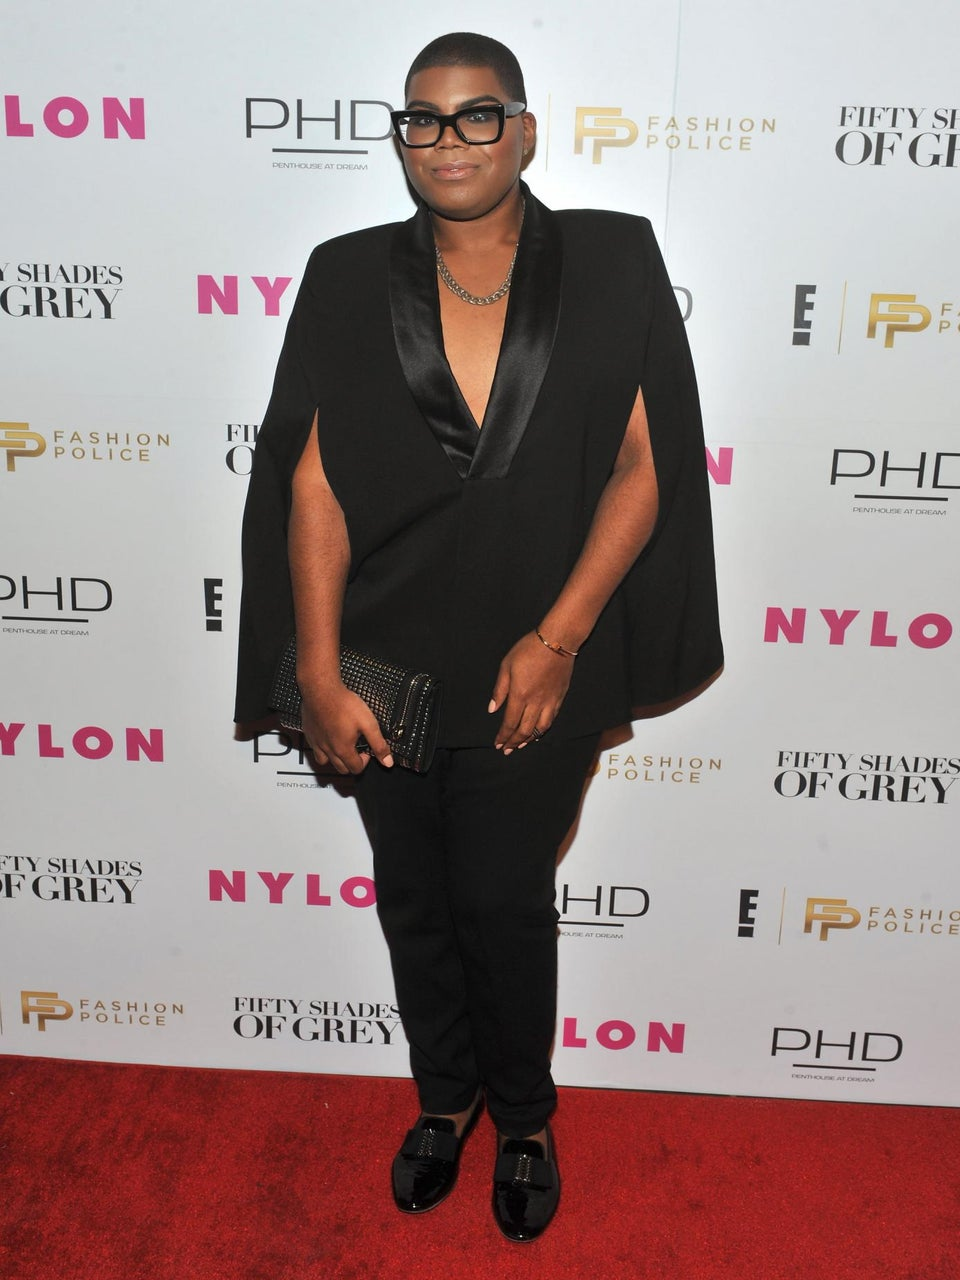 EJ Johnson's Throwback Pic Is The Epitome Of Flawless